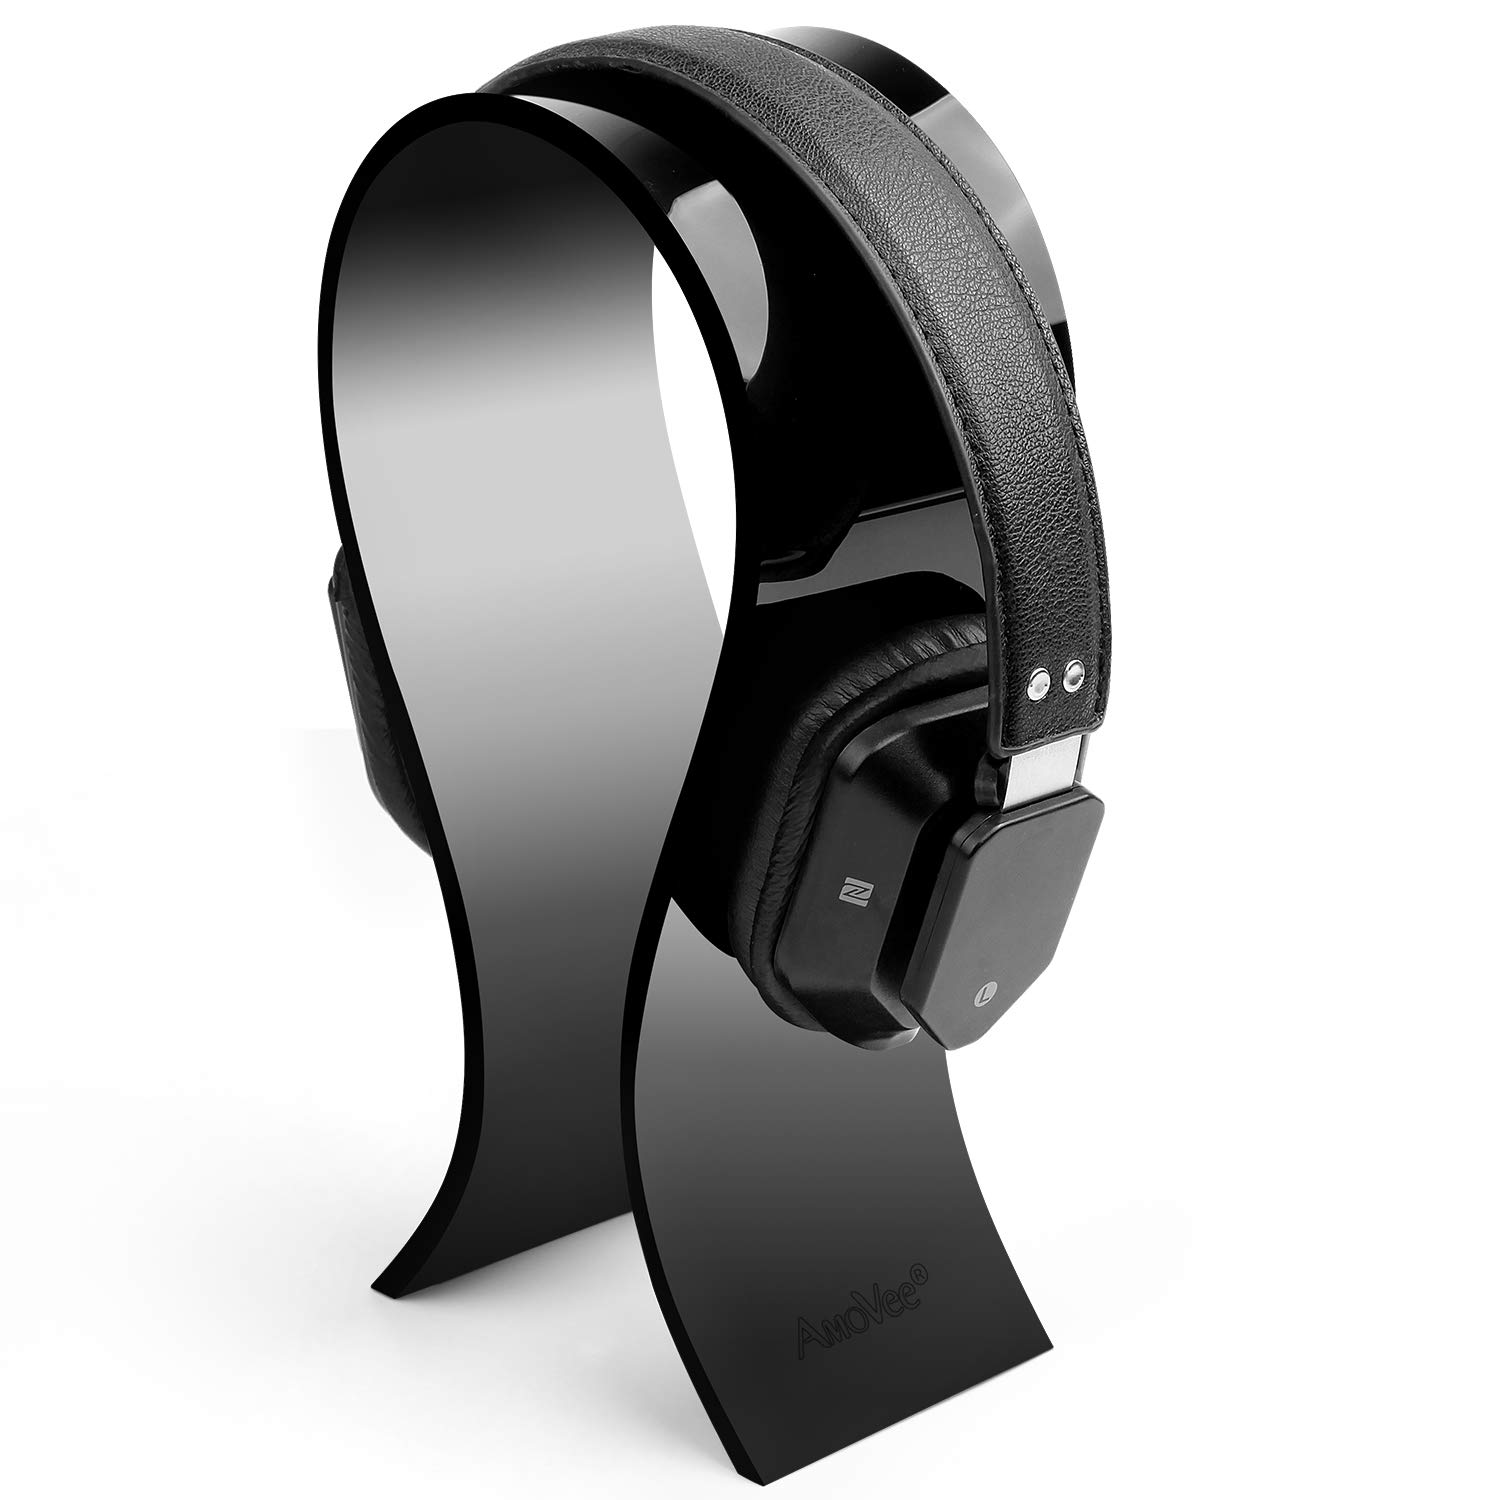 [Updated] AmoVee Acrylic Headphone Stand Gaming Headset Holder/Hanger, Extra Wide - Black